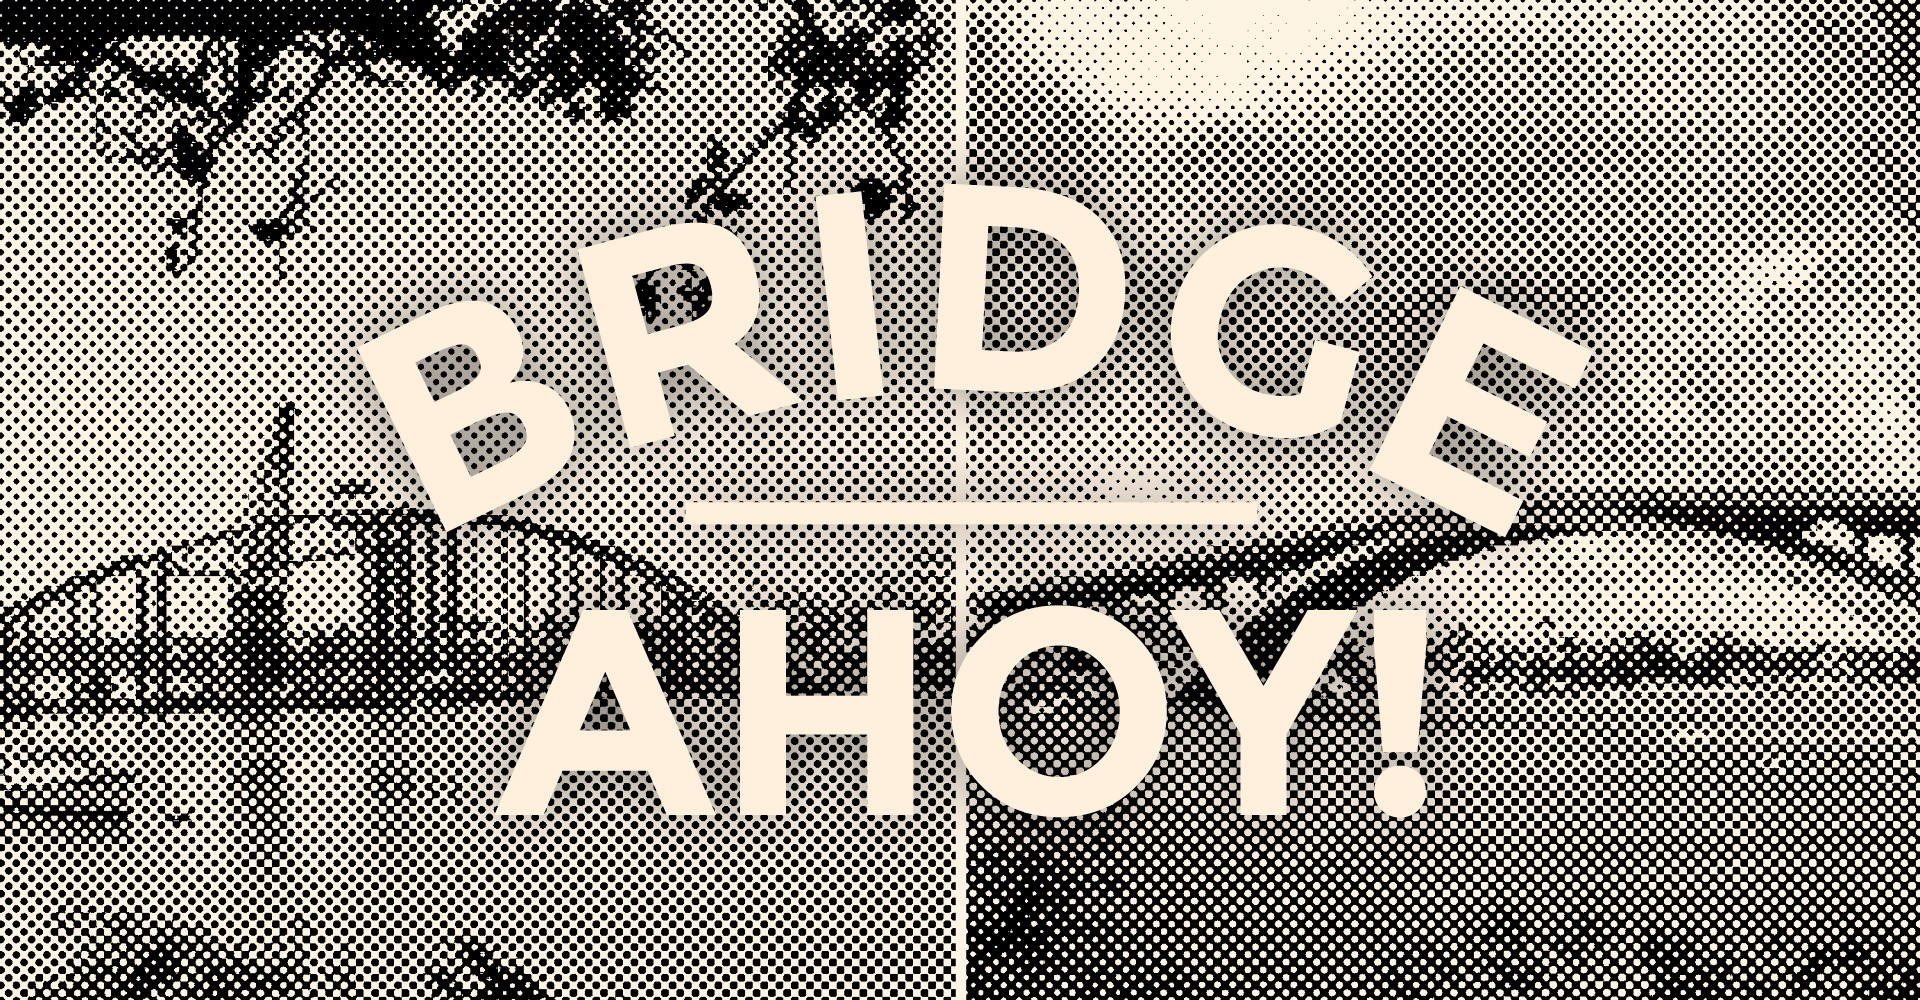 Bridge Ahoy! - Information & Cultural Exchange